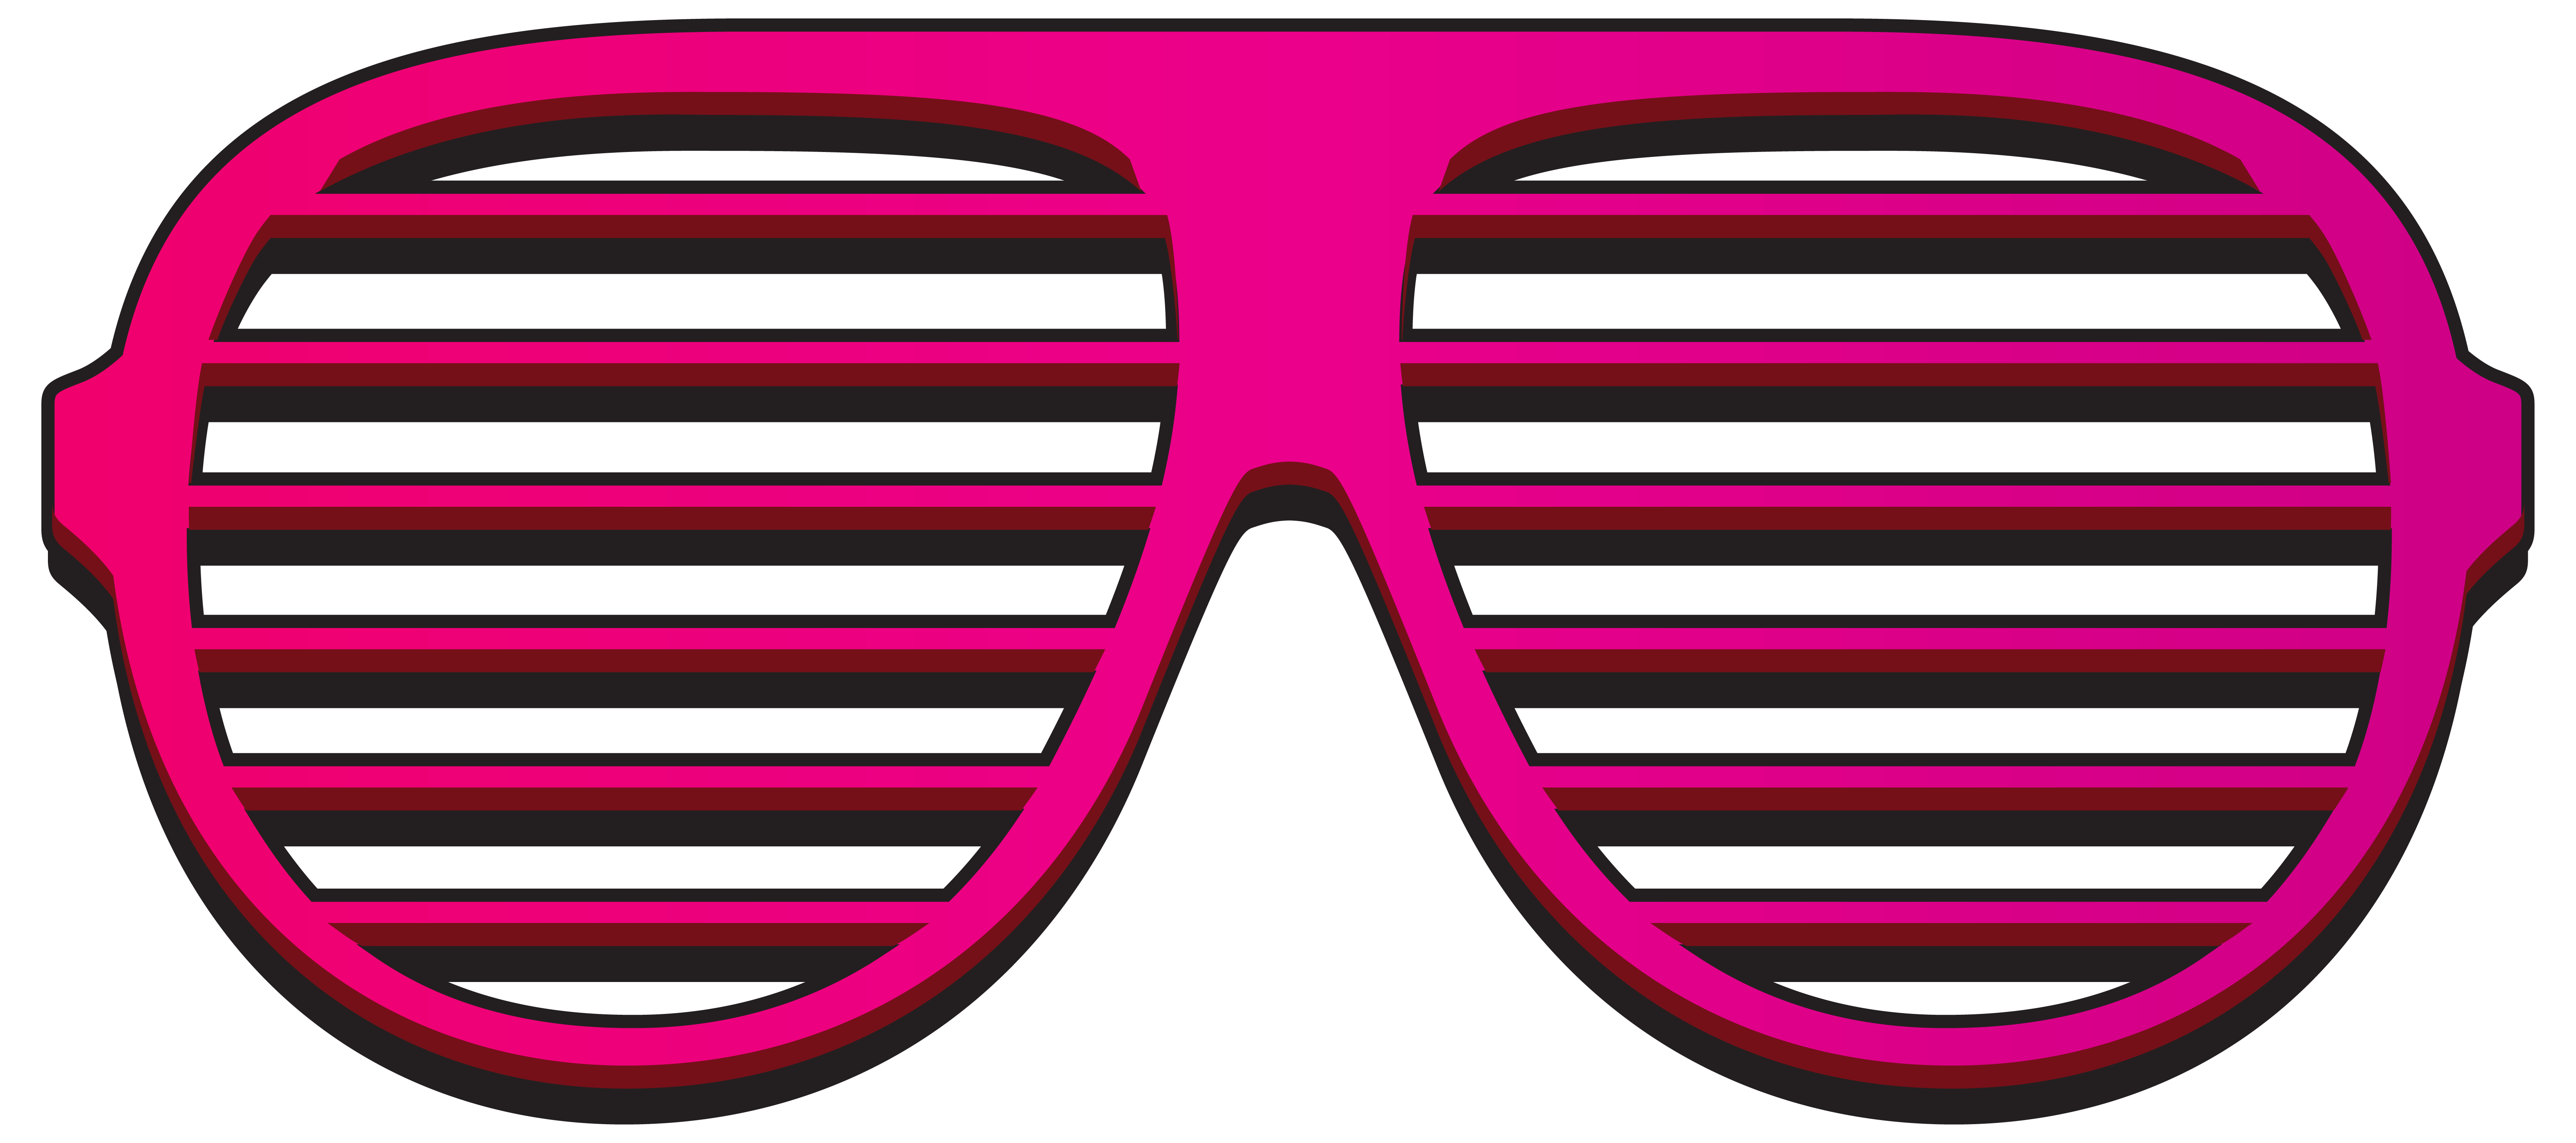 Pink Shutter Shades PNG Clipart Image.